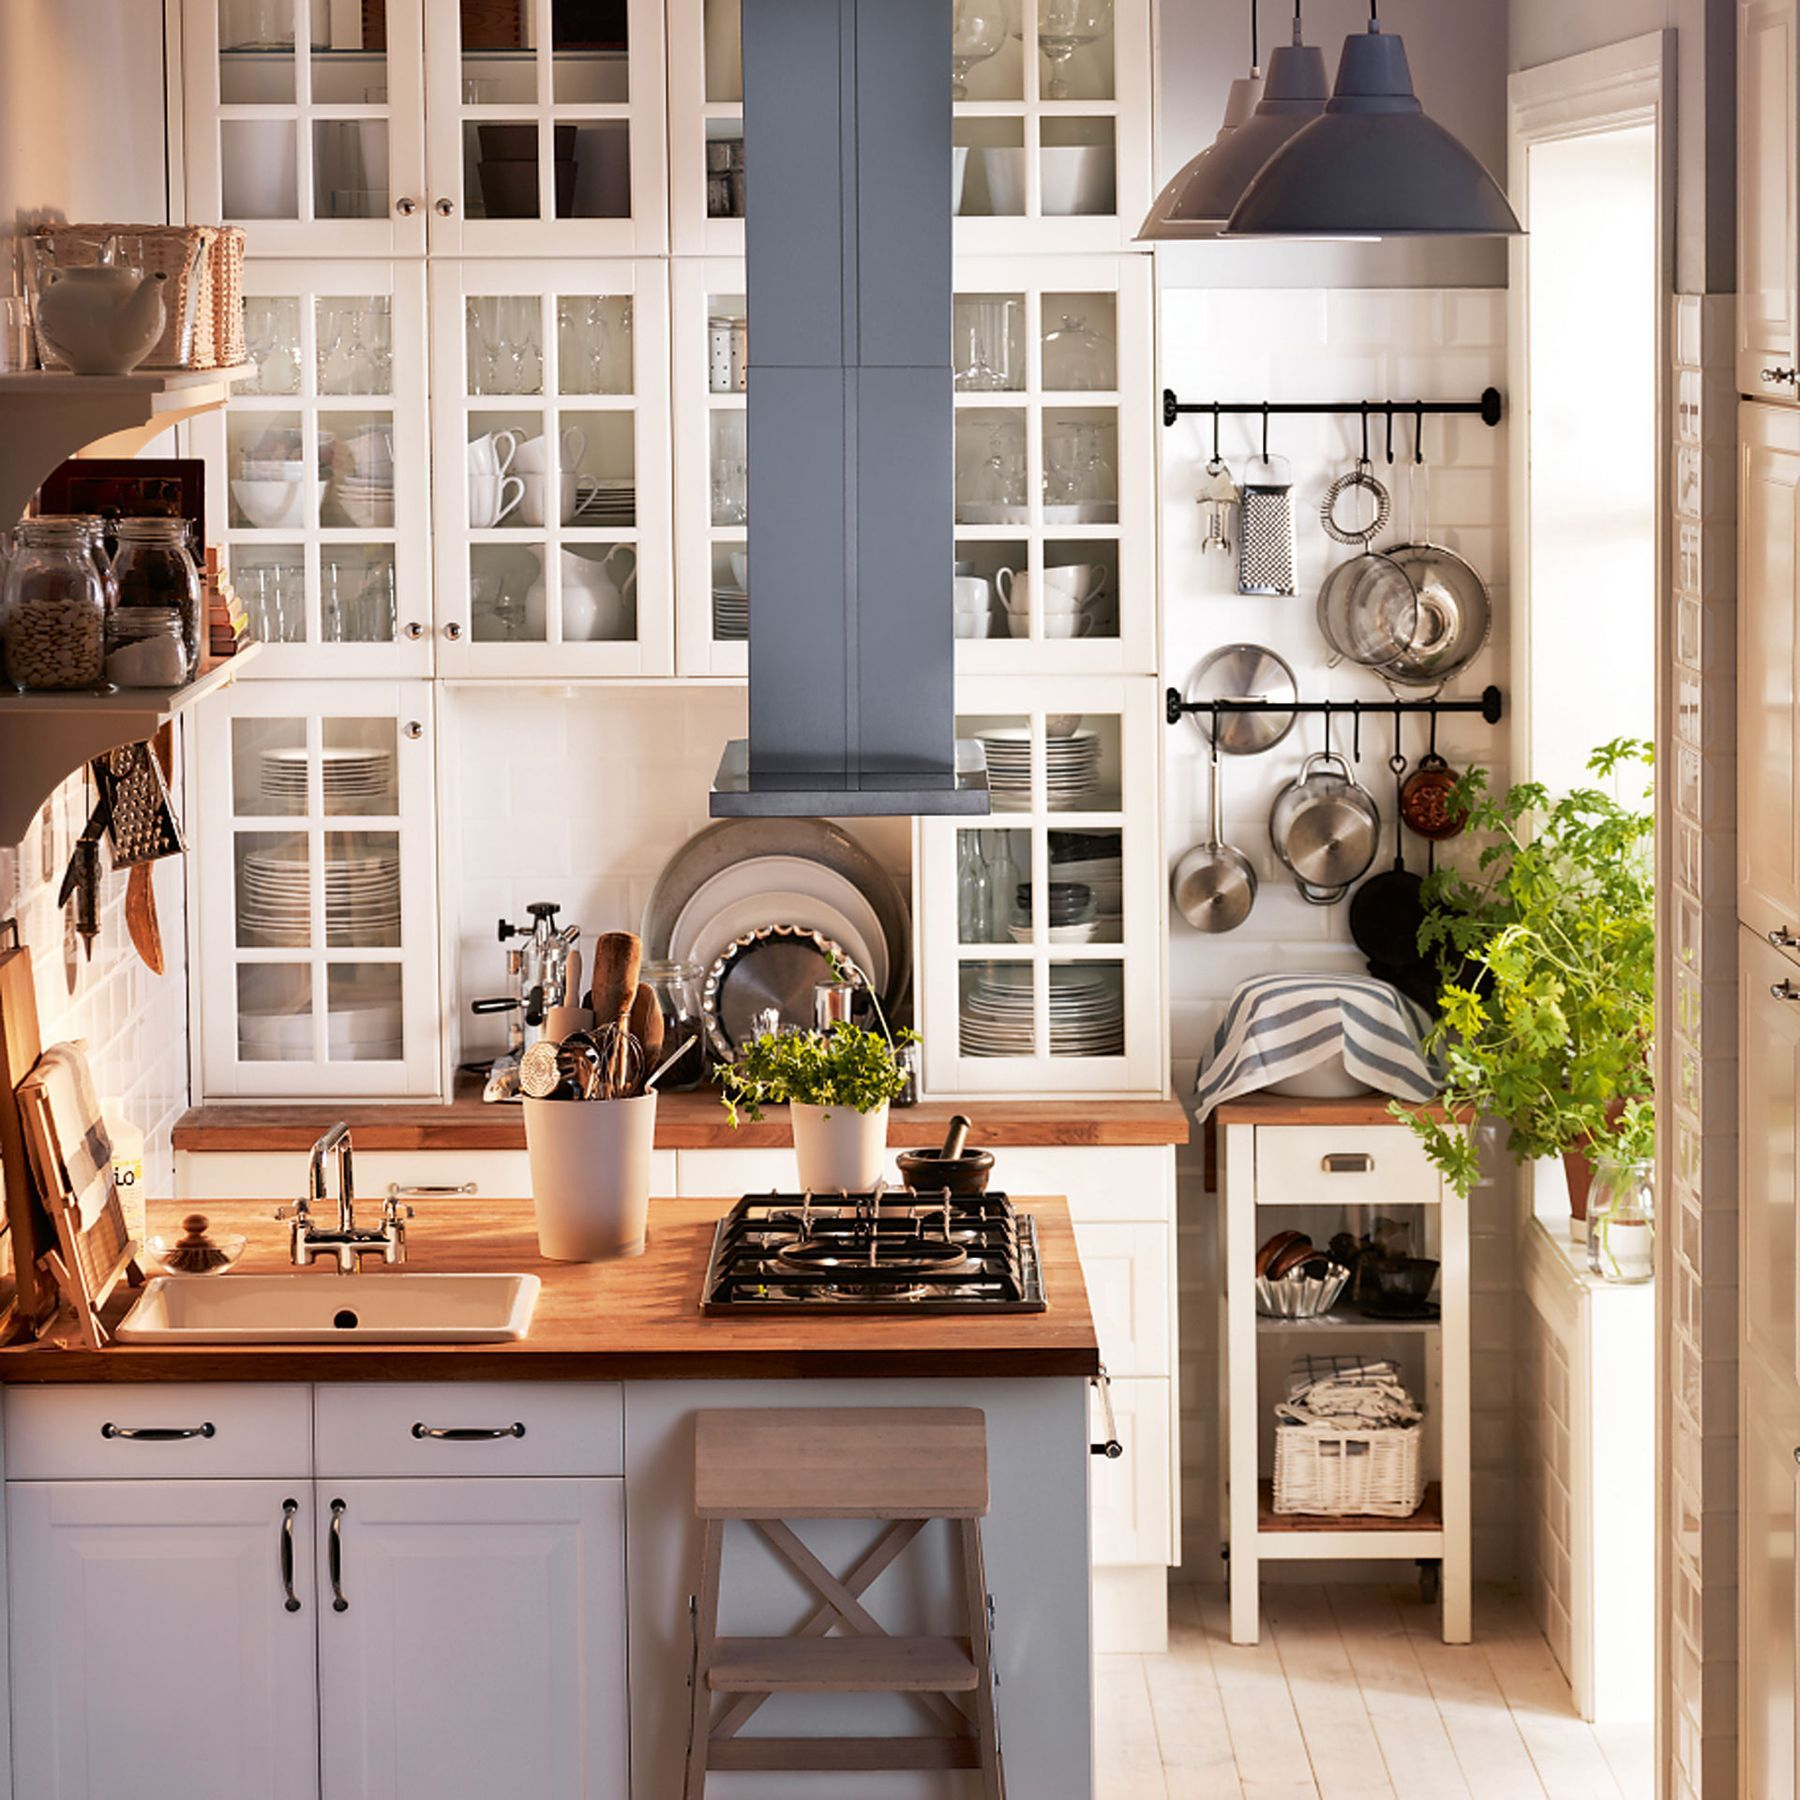 Kitchen ideas Ikea kitchen design, Ikea small kitchen